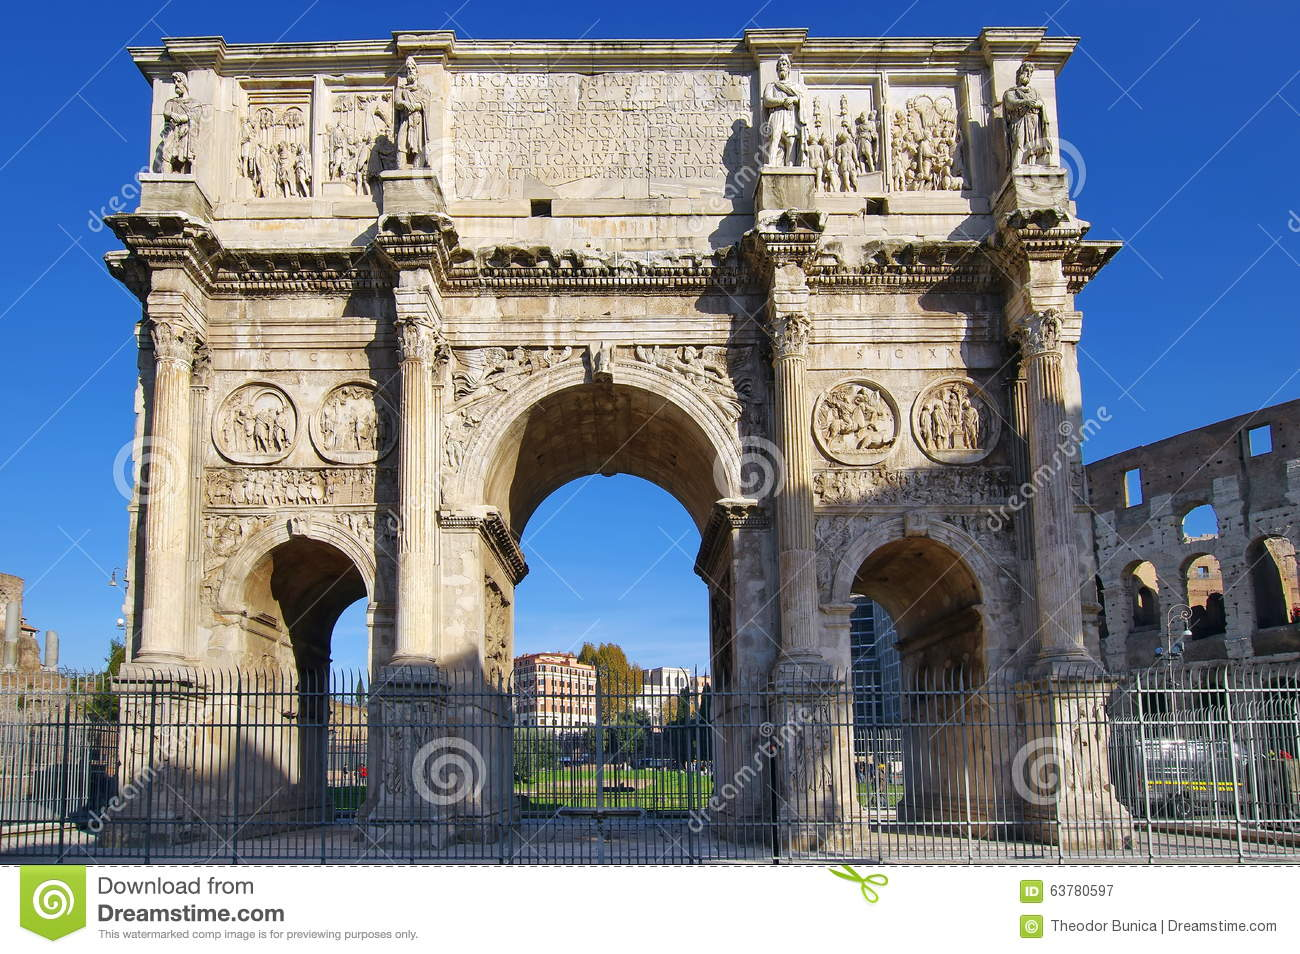 The Arch of Constantine - landmark attraction in Rome, Italy